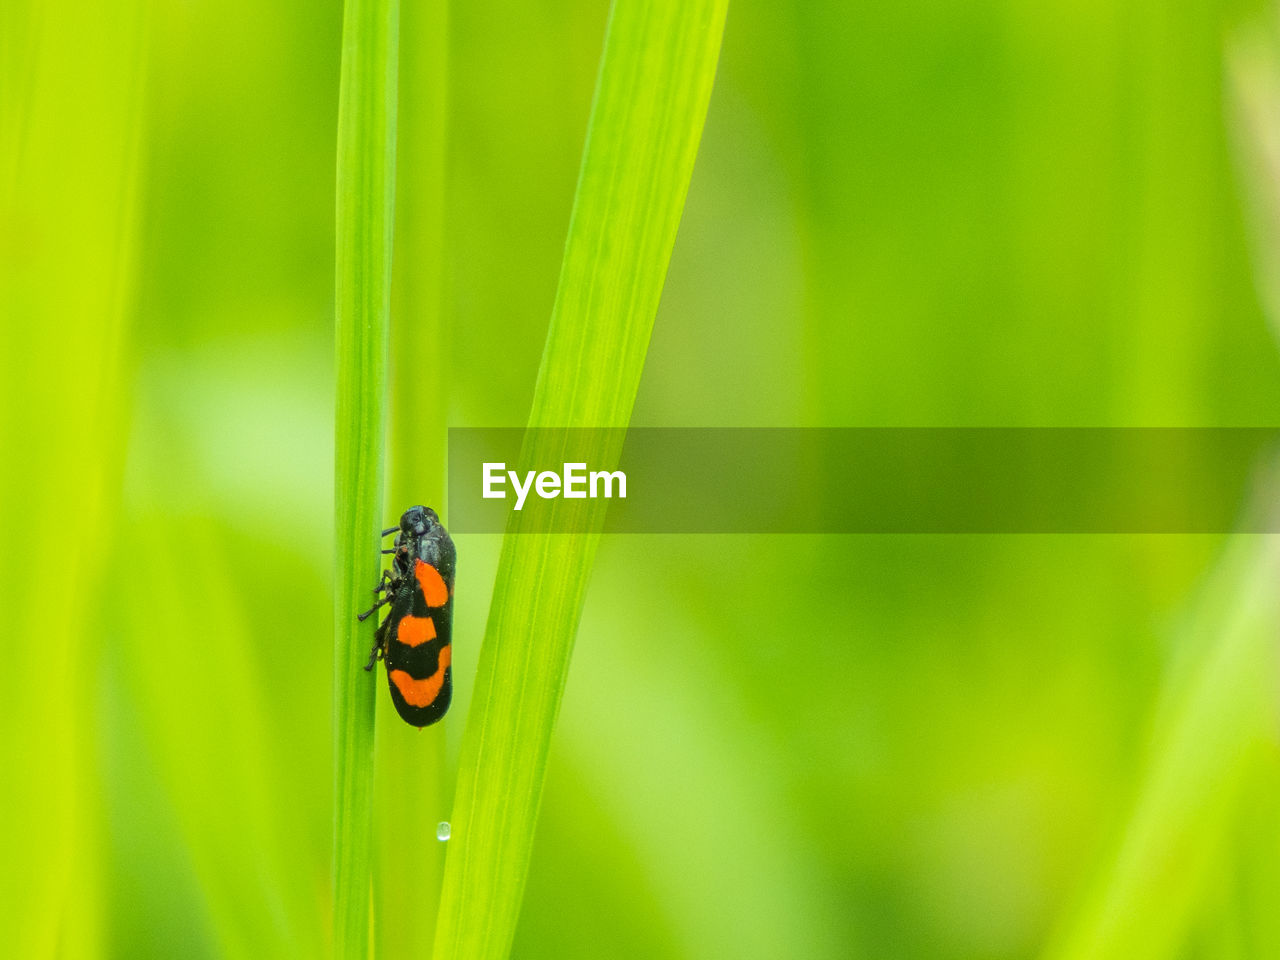 insect, invertebrate, animal wildlife, animal themes, animal, animals in the wild, one animal, green color, plant, close-up, focus on foreground, beauty in nature, no people, nature, ladybug, day, selective focus, growth, beetle, plant part, outdoors, blade of grass, butterfly - insect